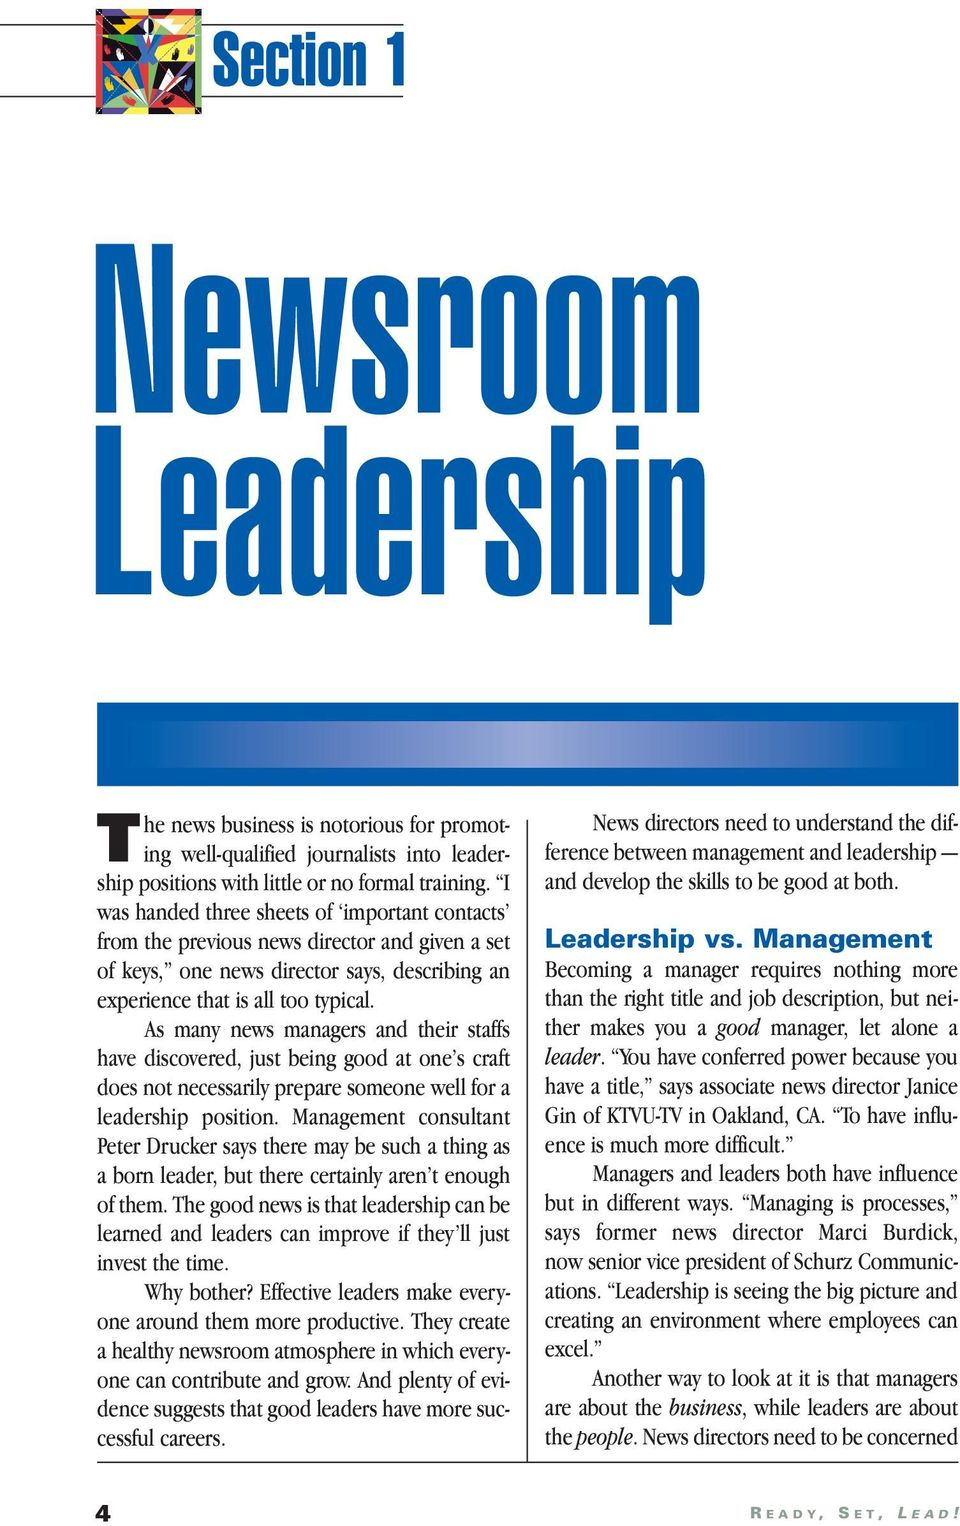 As many news managers and their staffs have discovered, just being good at one s craft does not necessarily prepare someone well for a leadership position.